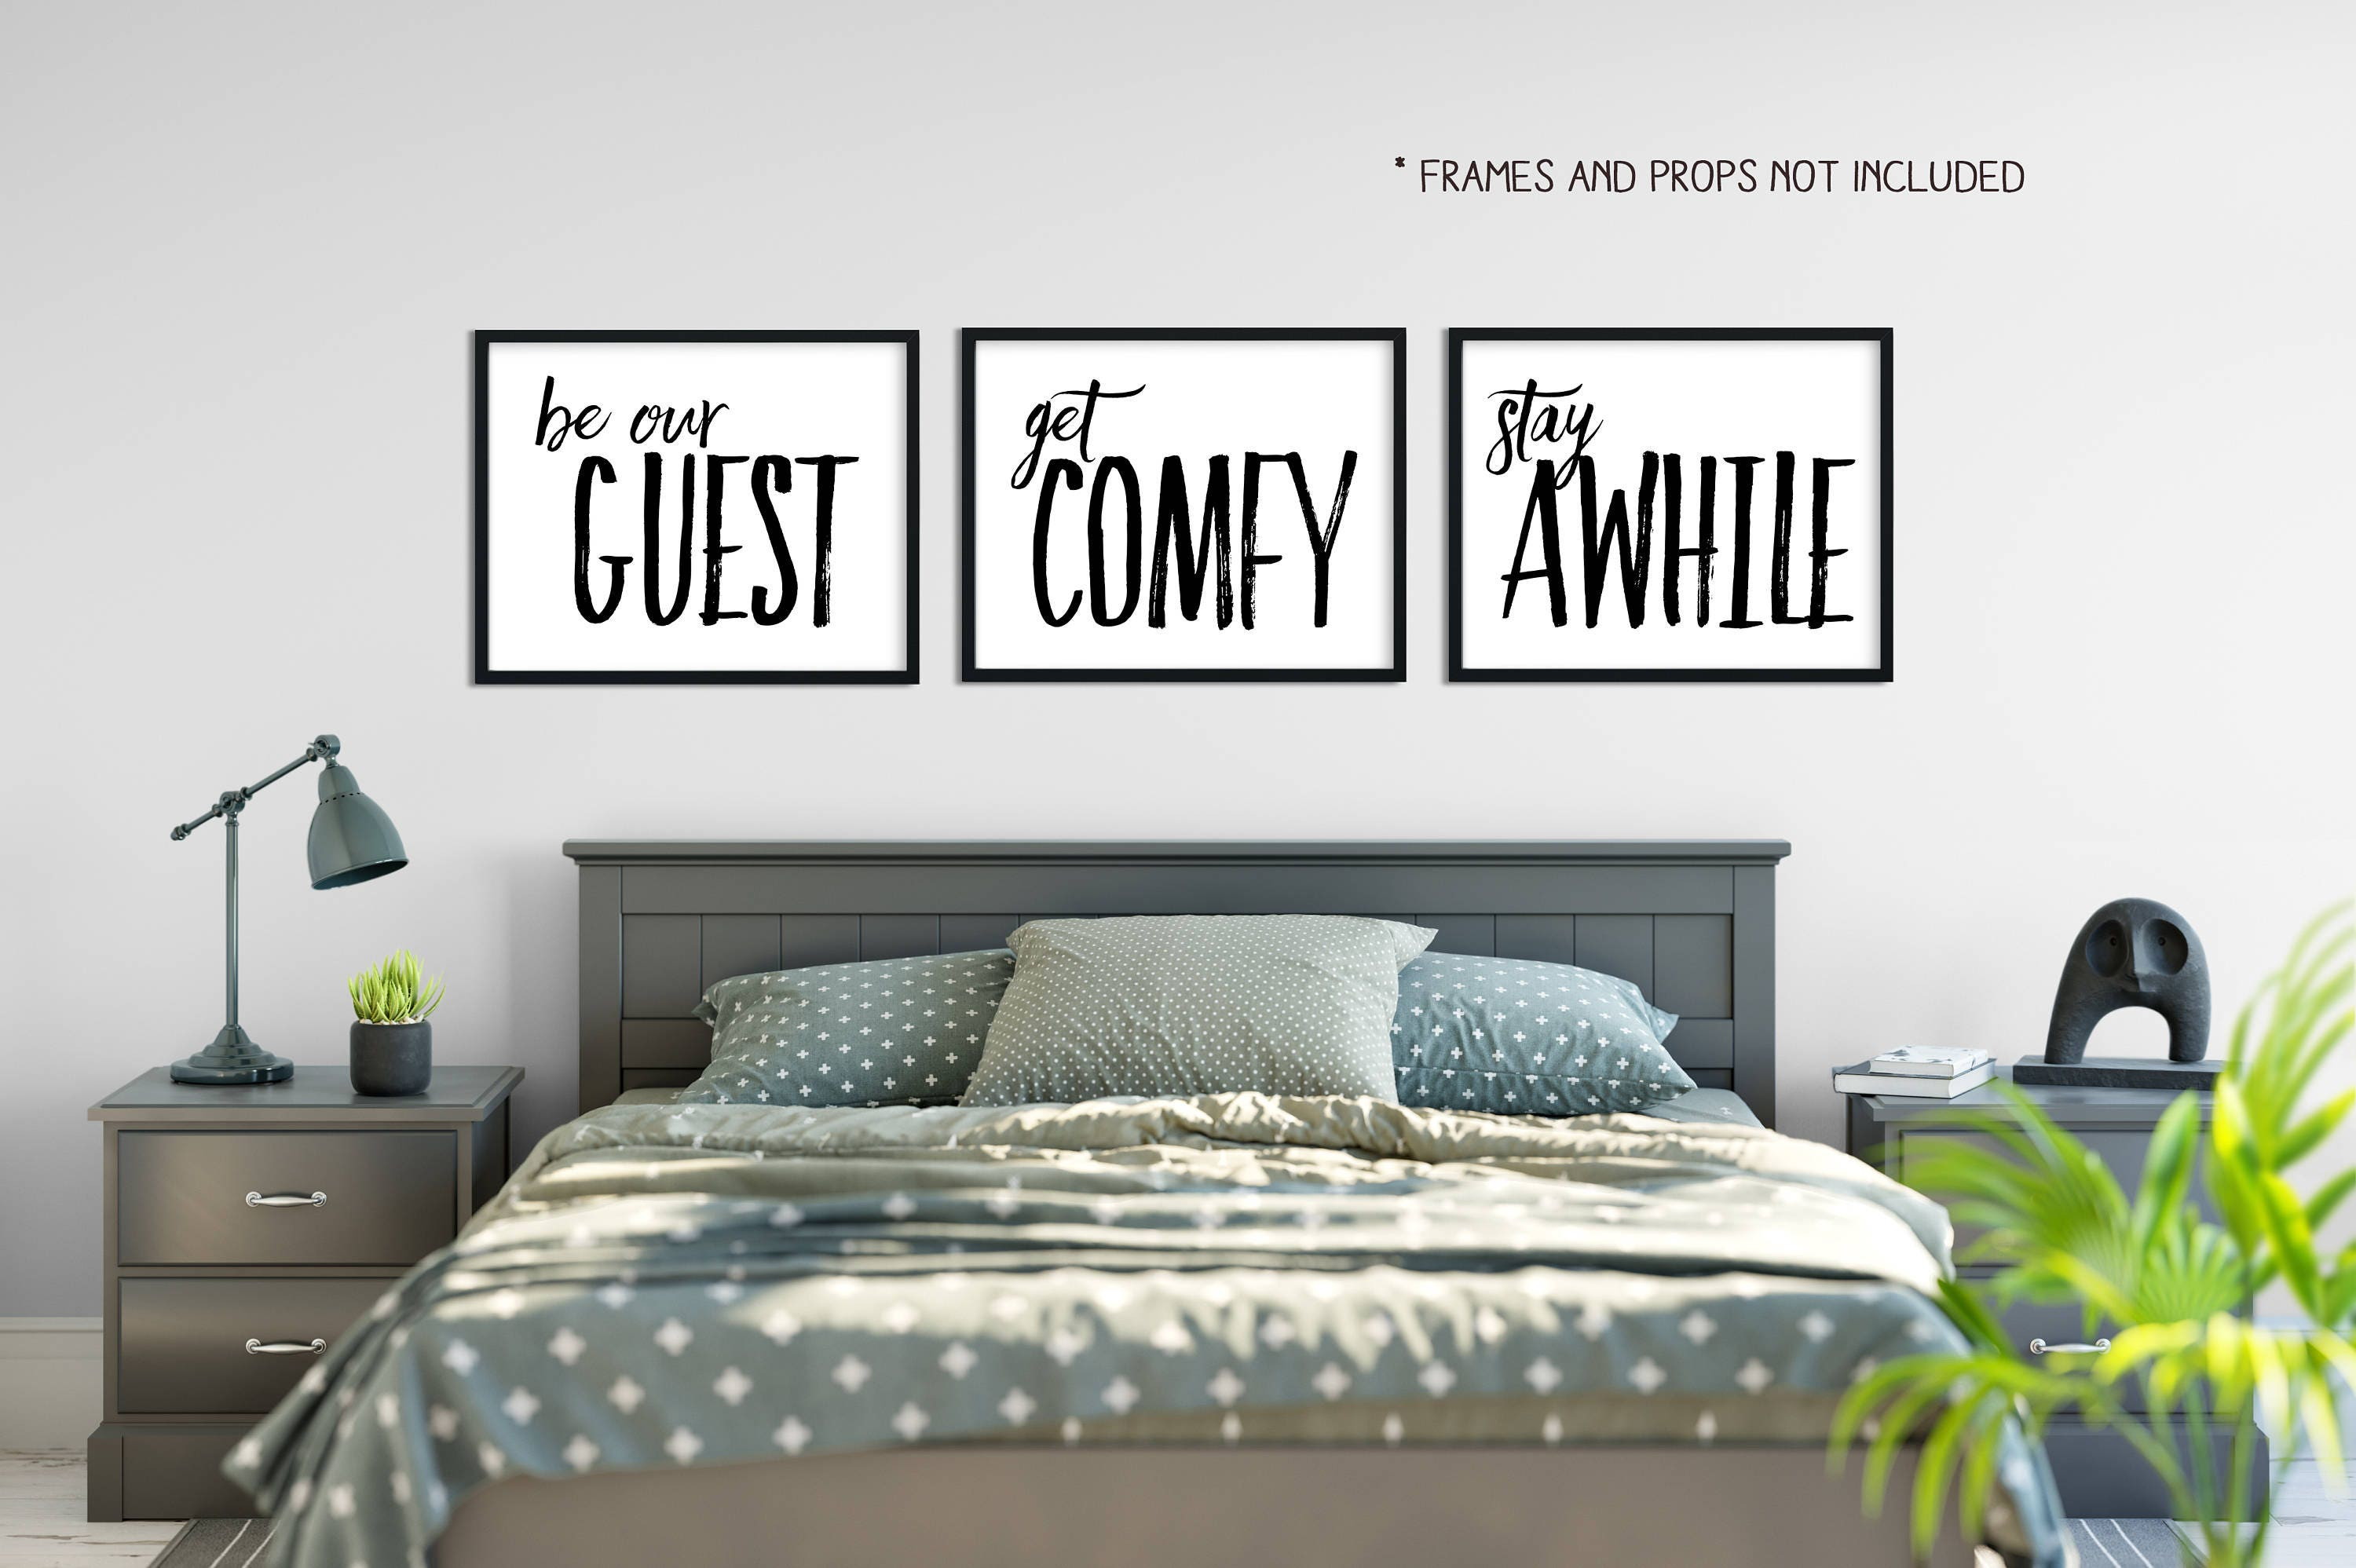 image about Be Our Guest Printable known as House Decor 16x20 - Wall Decor - Be Our Visitor - Receive Relaxed